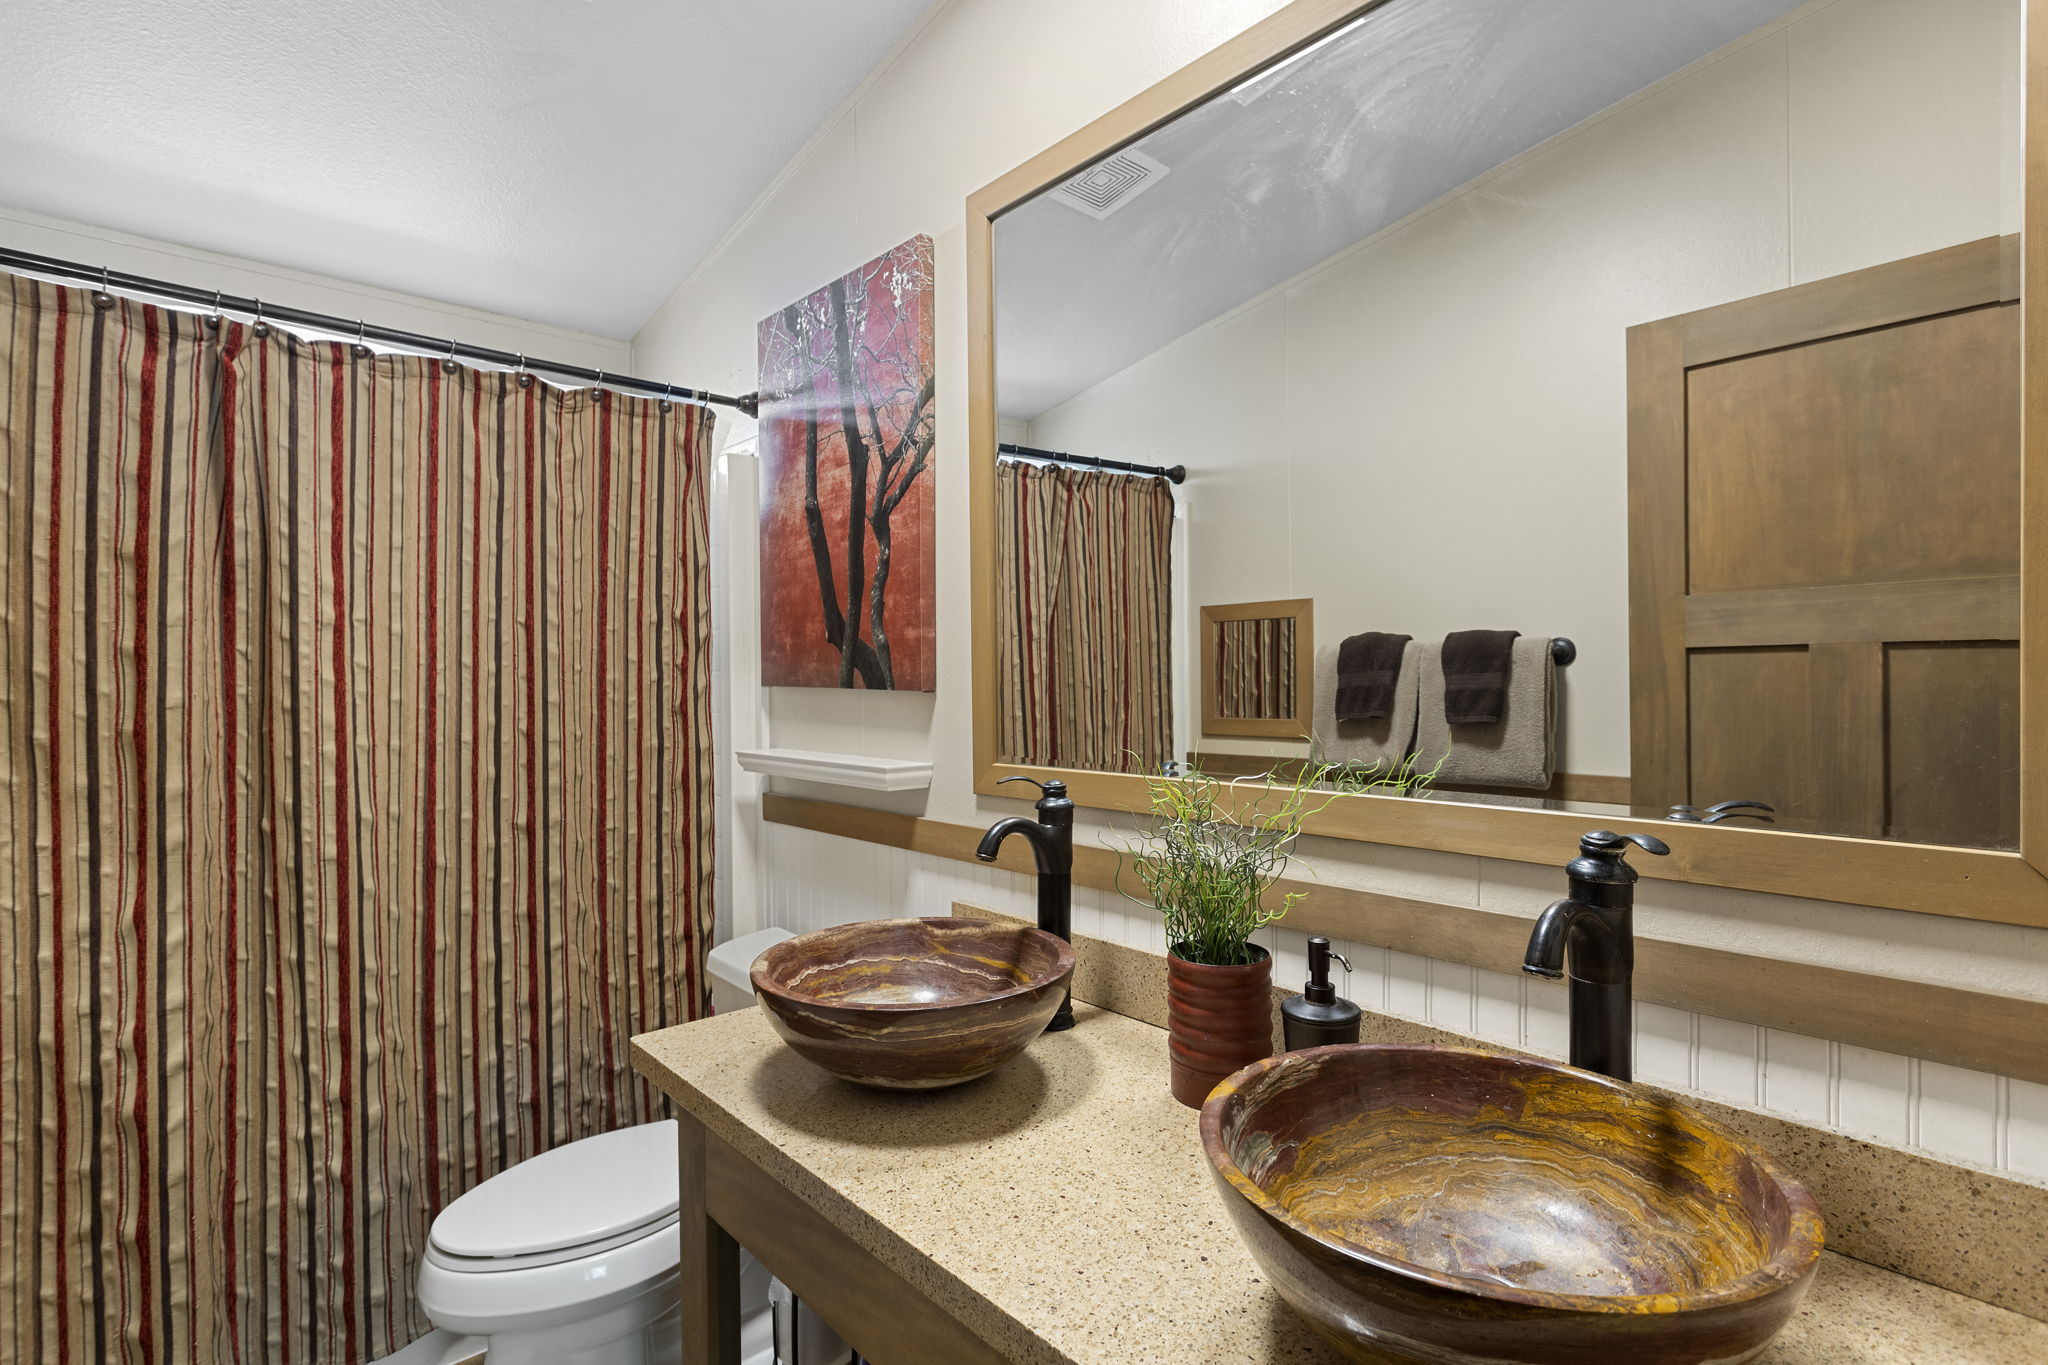 Hall bathroom with shower/tub and vanity with 2 beautiful vessel sinks!